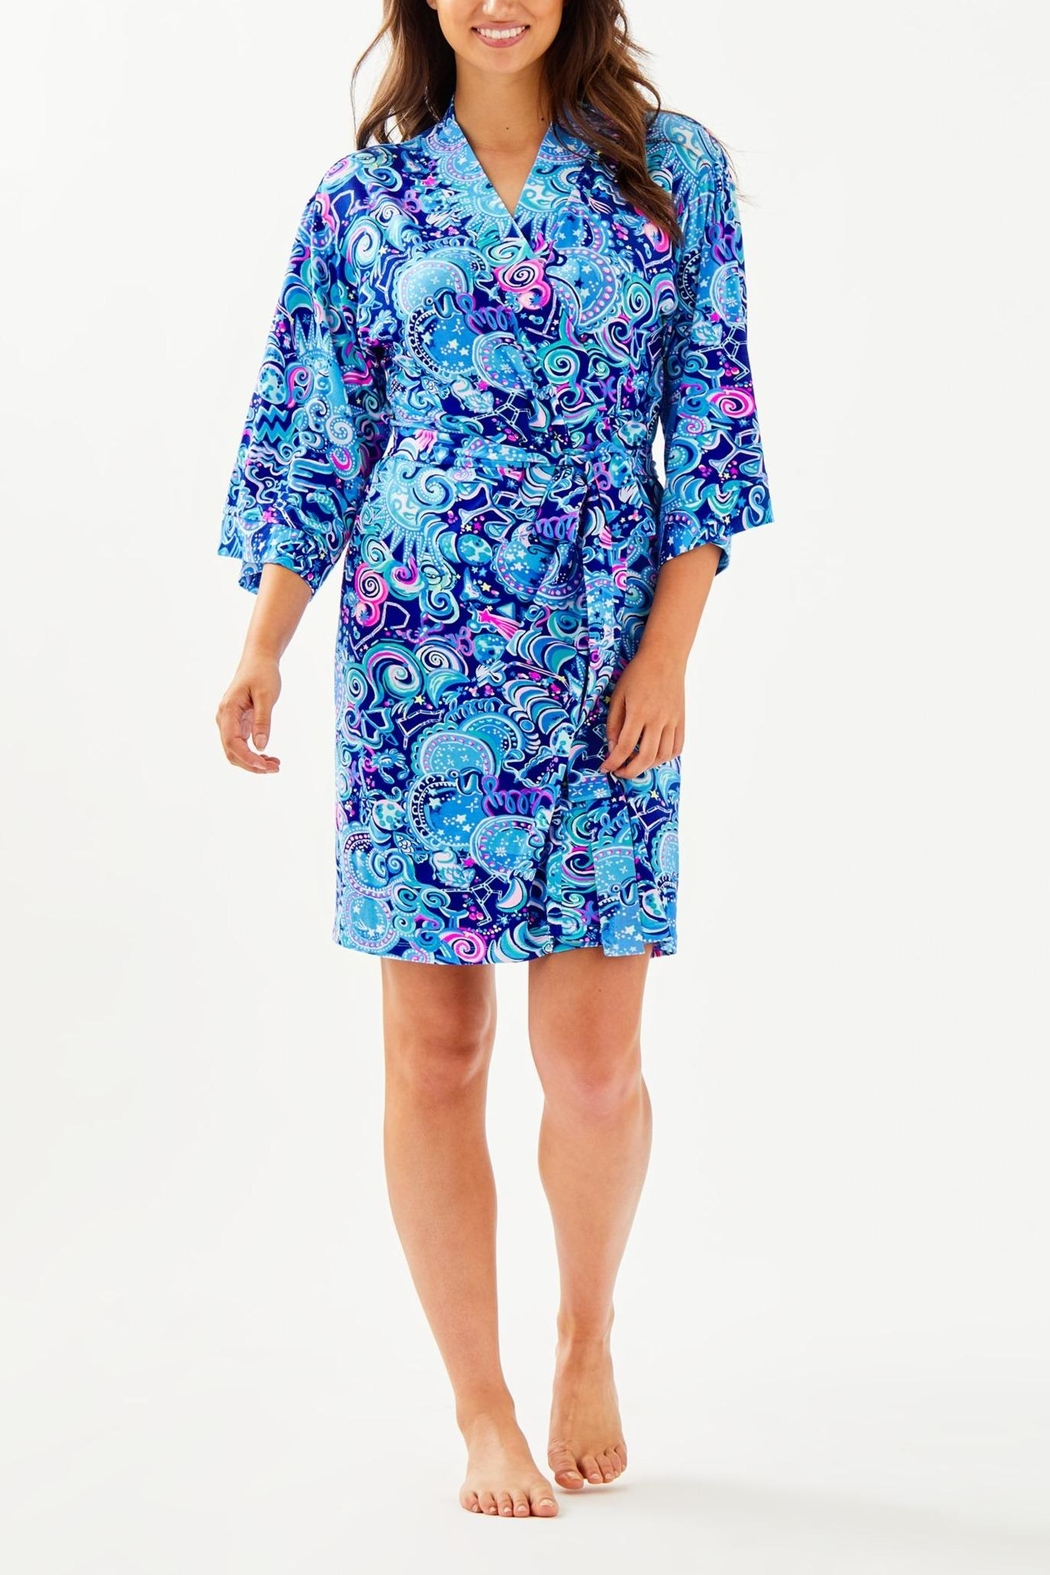 Lilly Pulitzer Lina Robe - Back Cropped Image